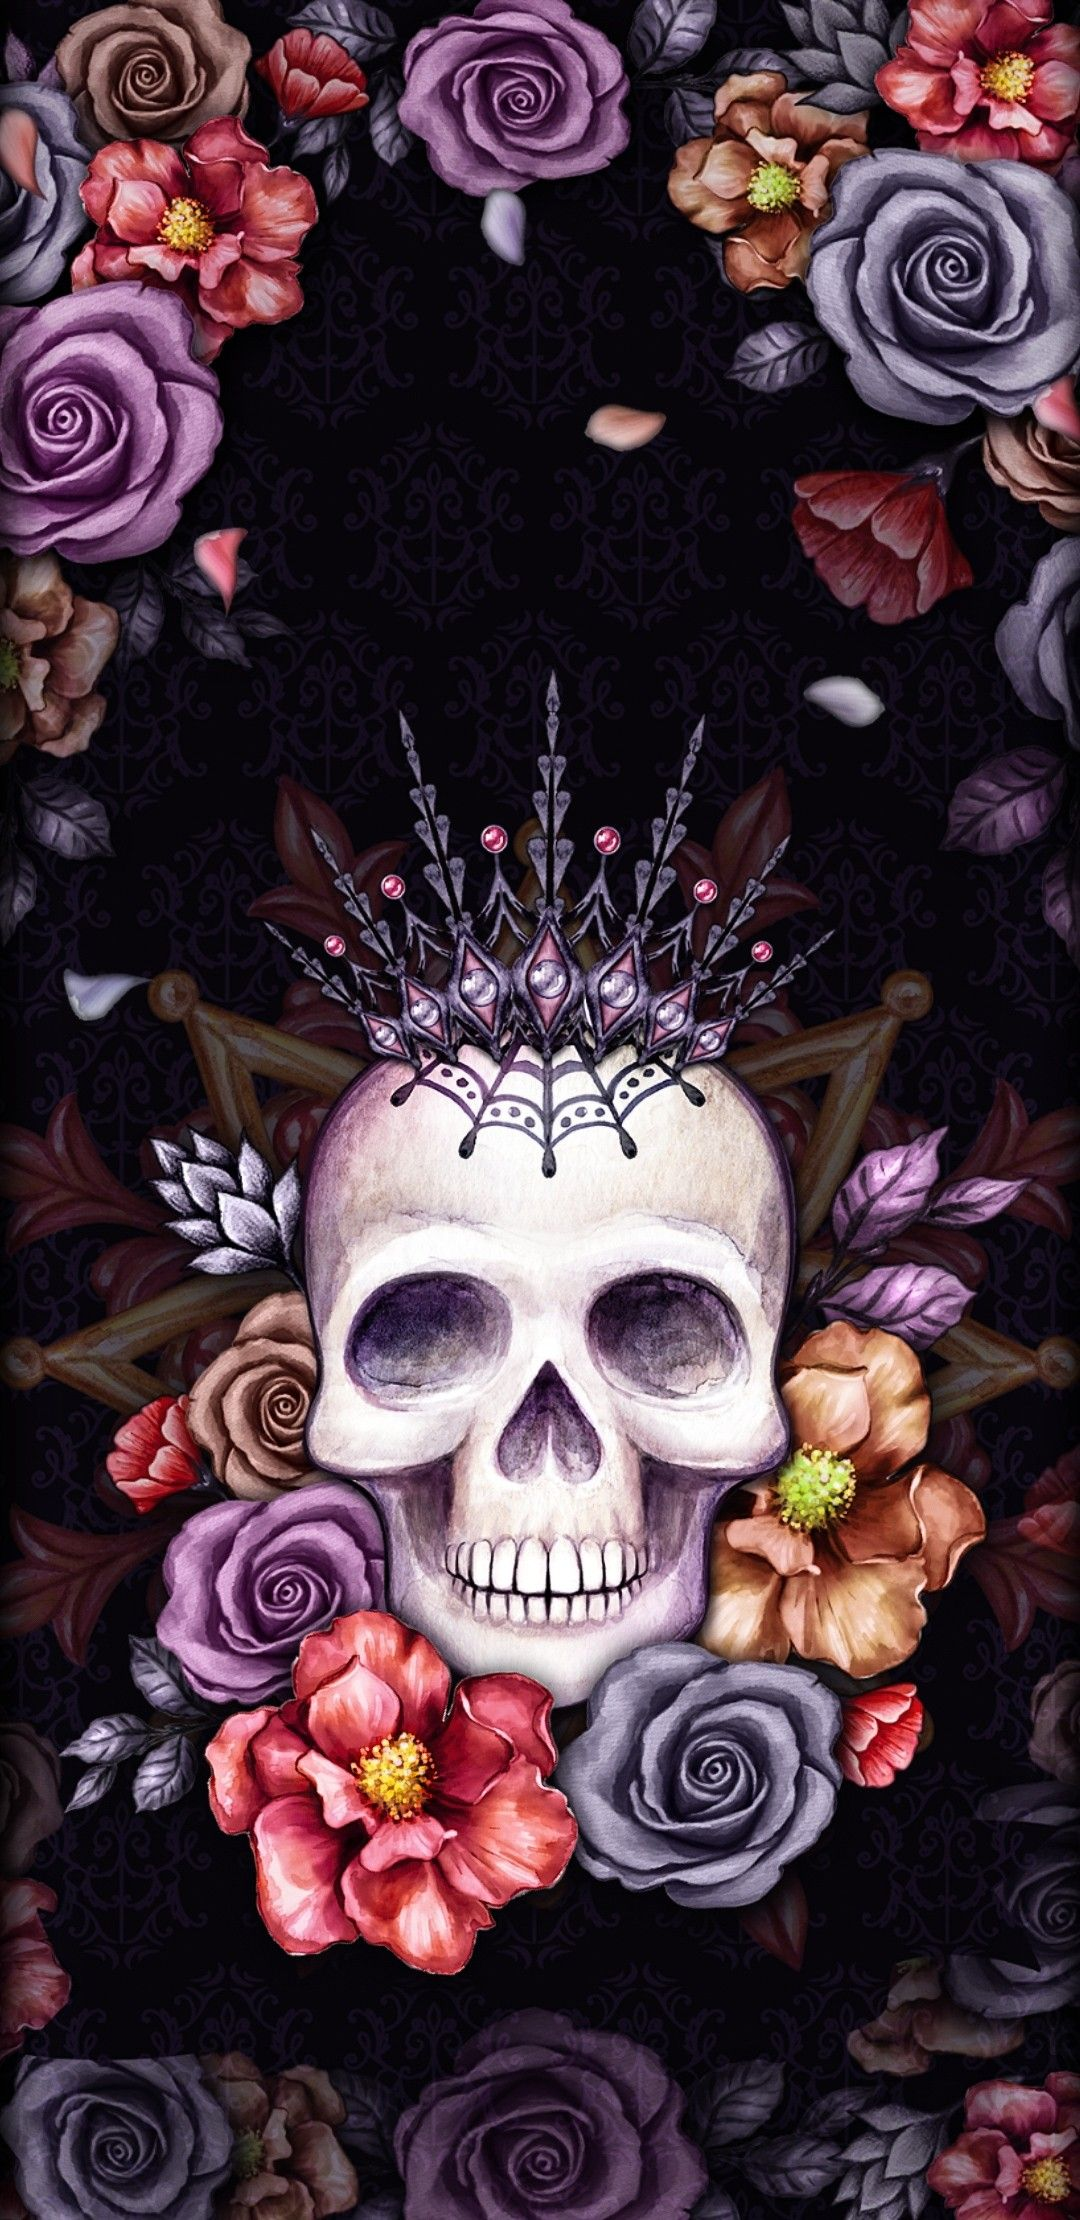 Wallpaper Lockscreen Iphone Android With Images Sugar Skull